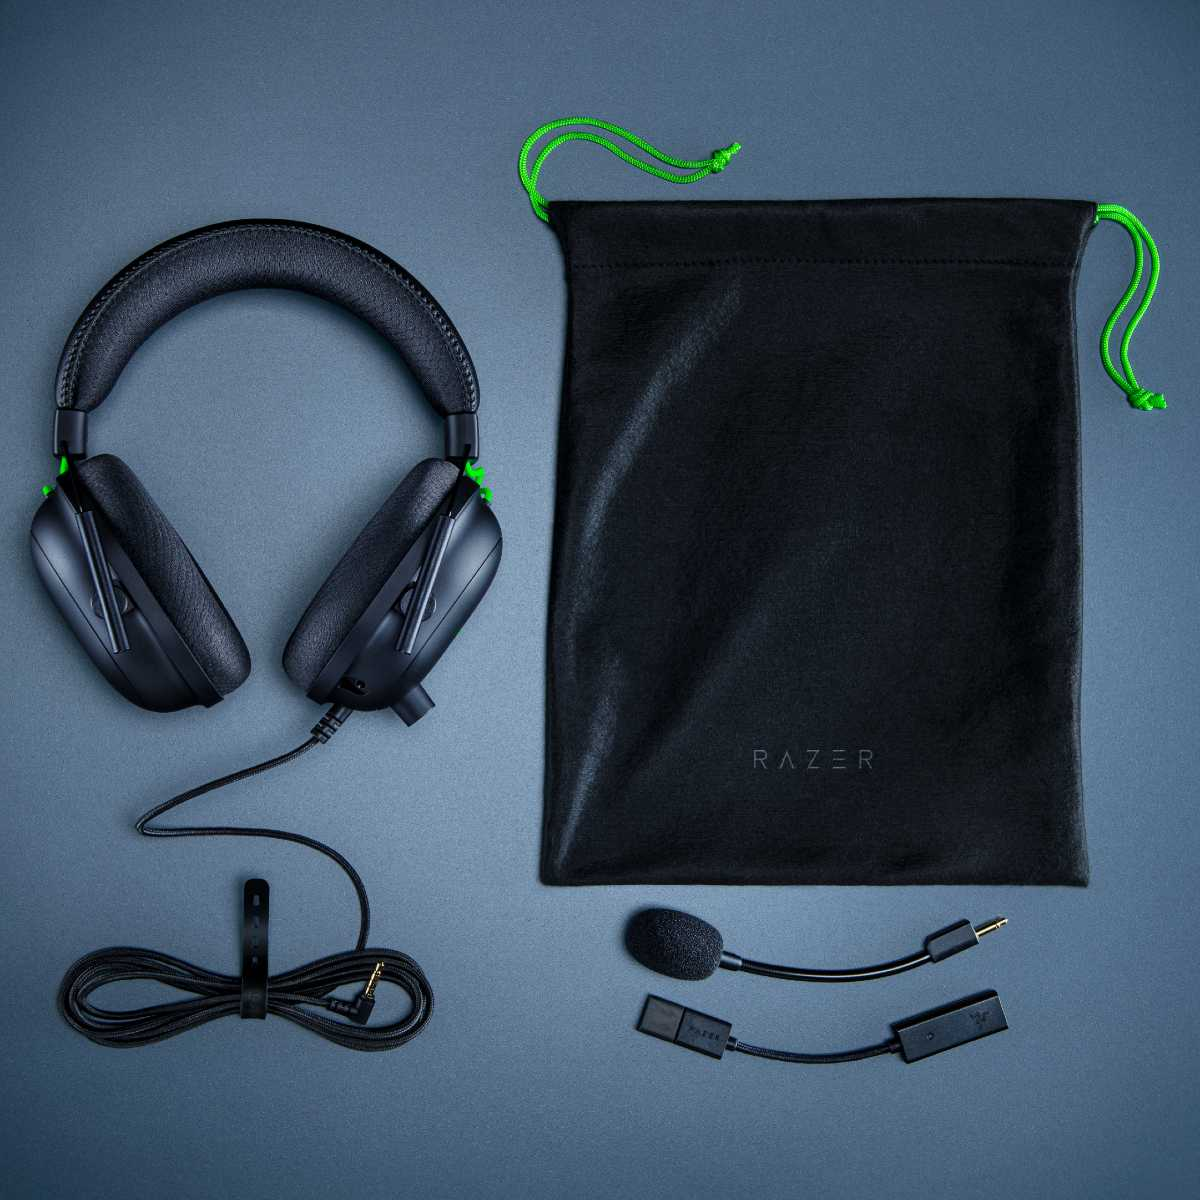 The Razer BlackShark V2 esports gaming headset